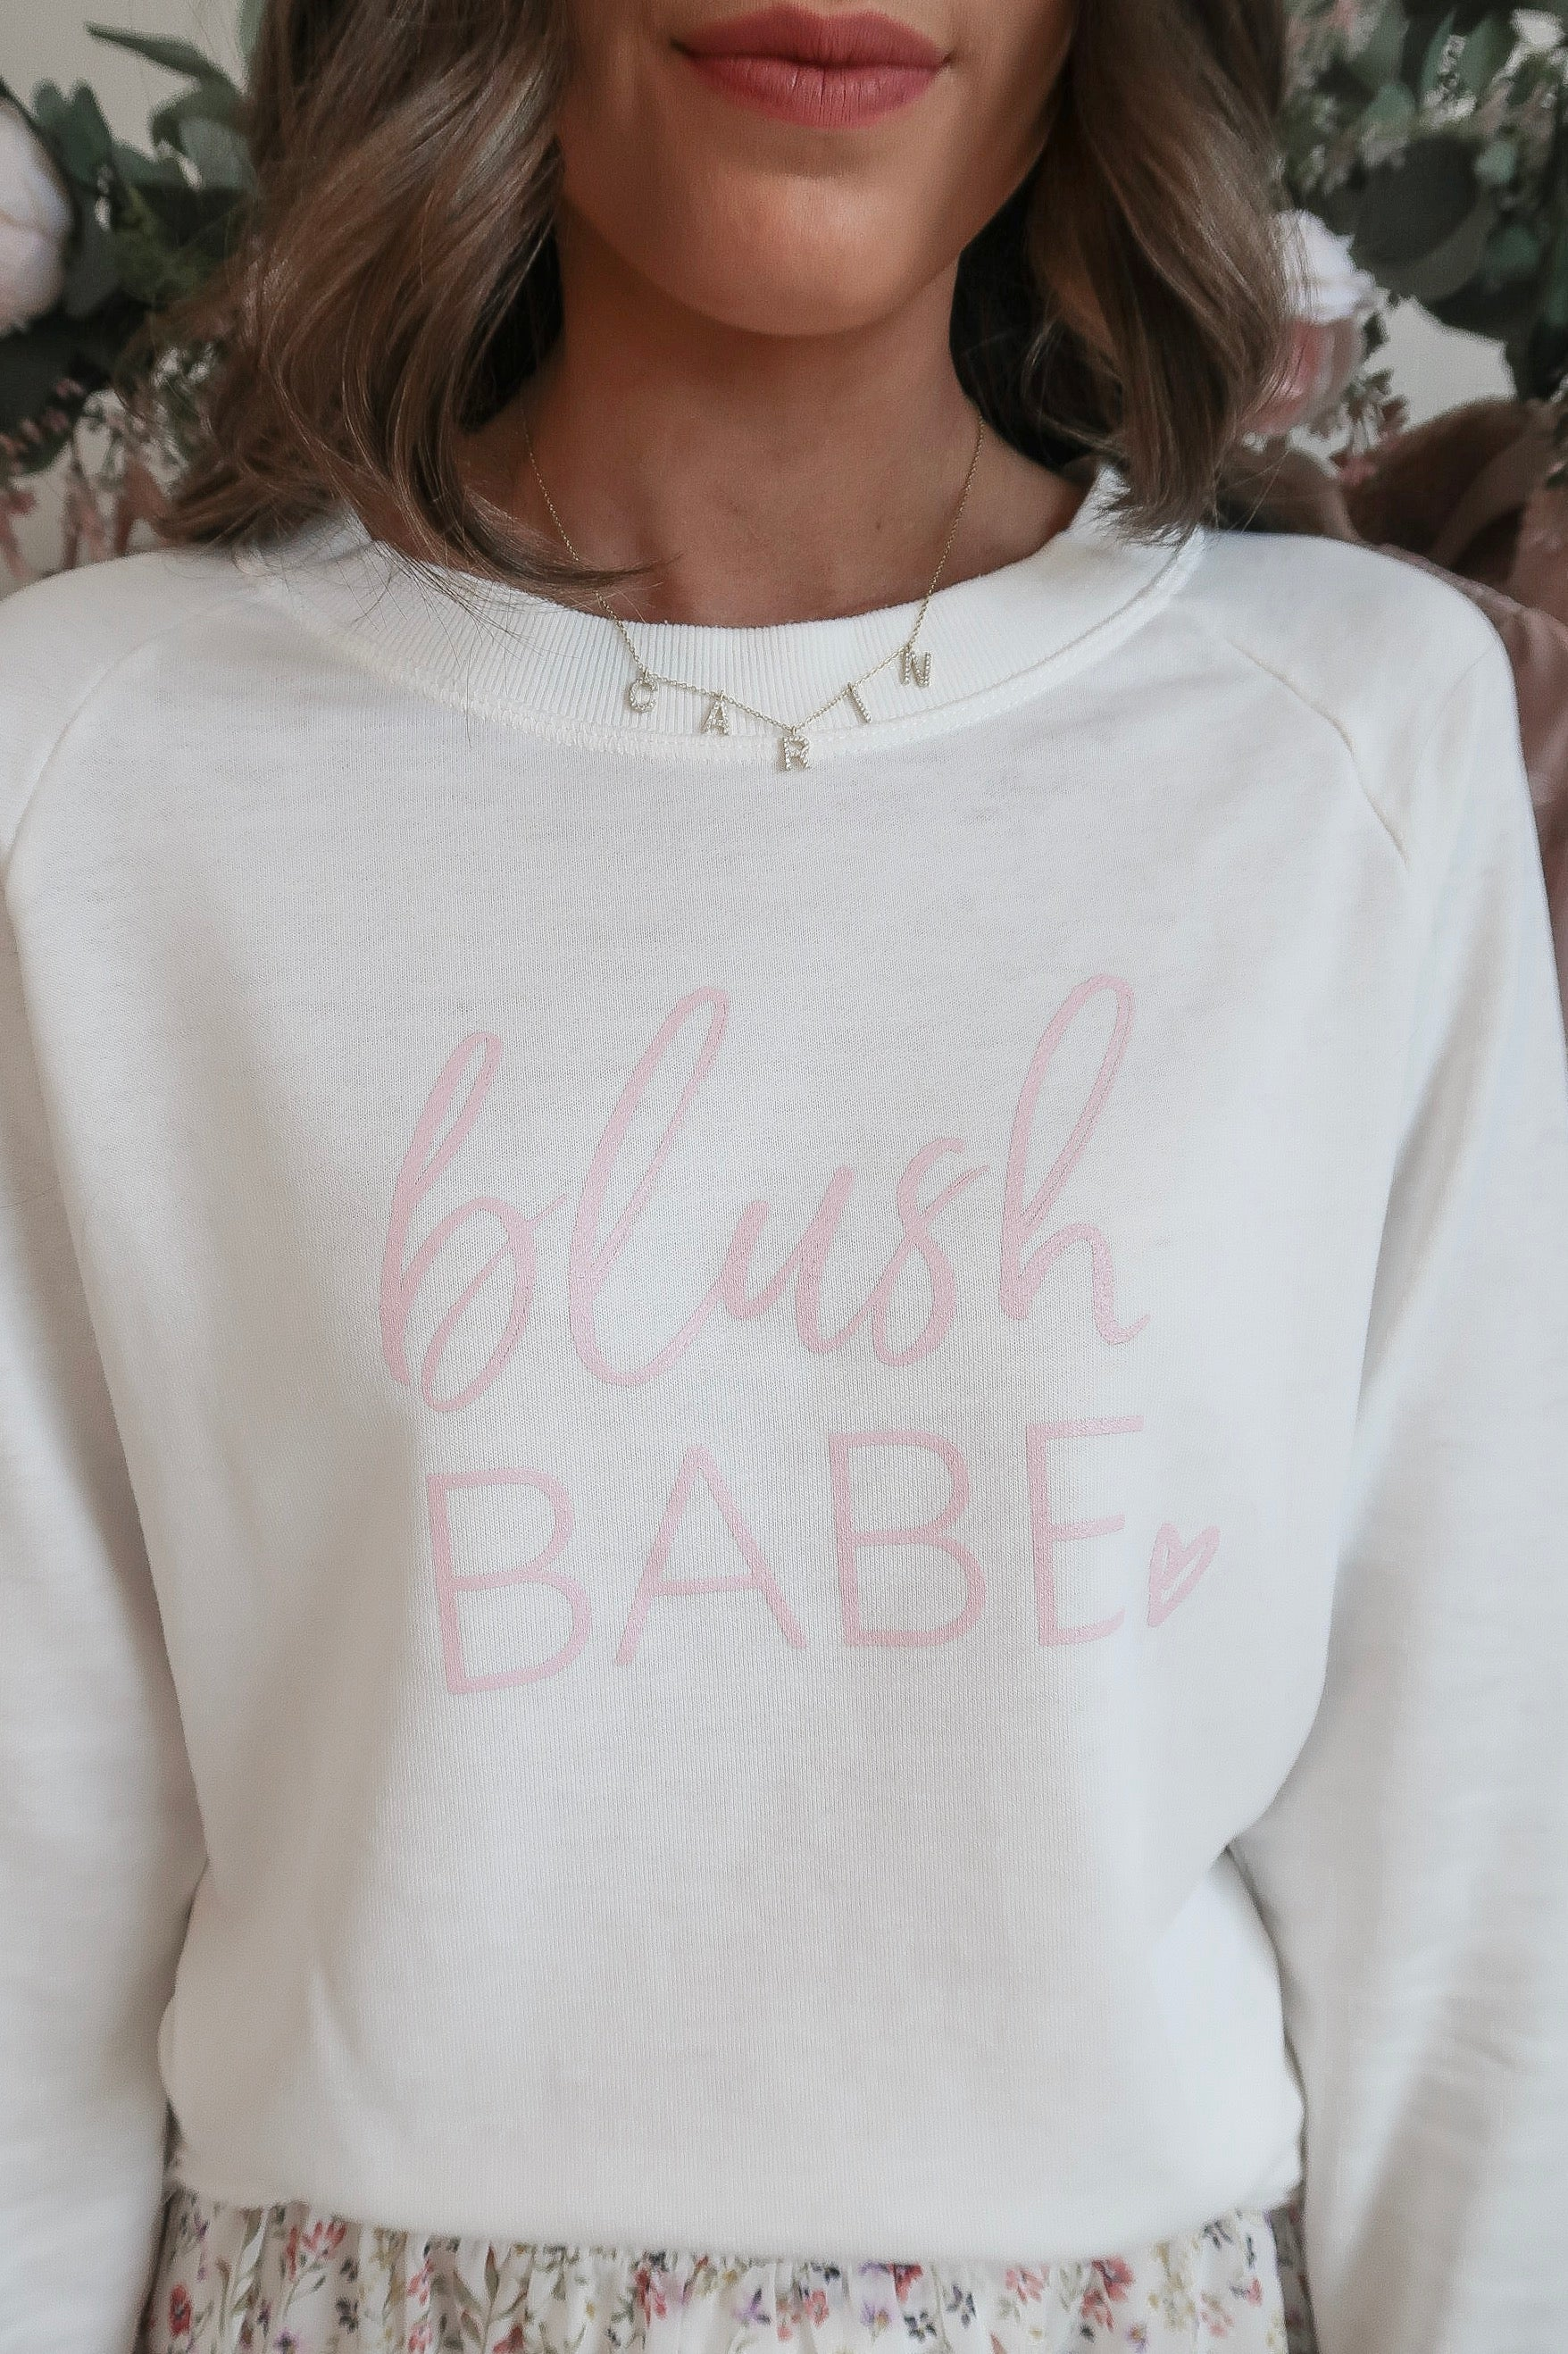 Blush Babe Sweatshirt